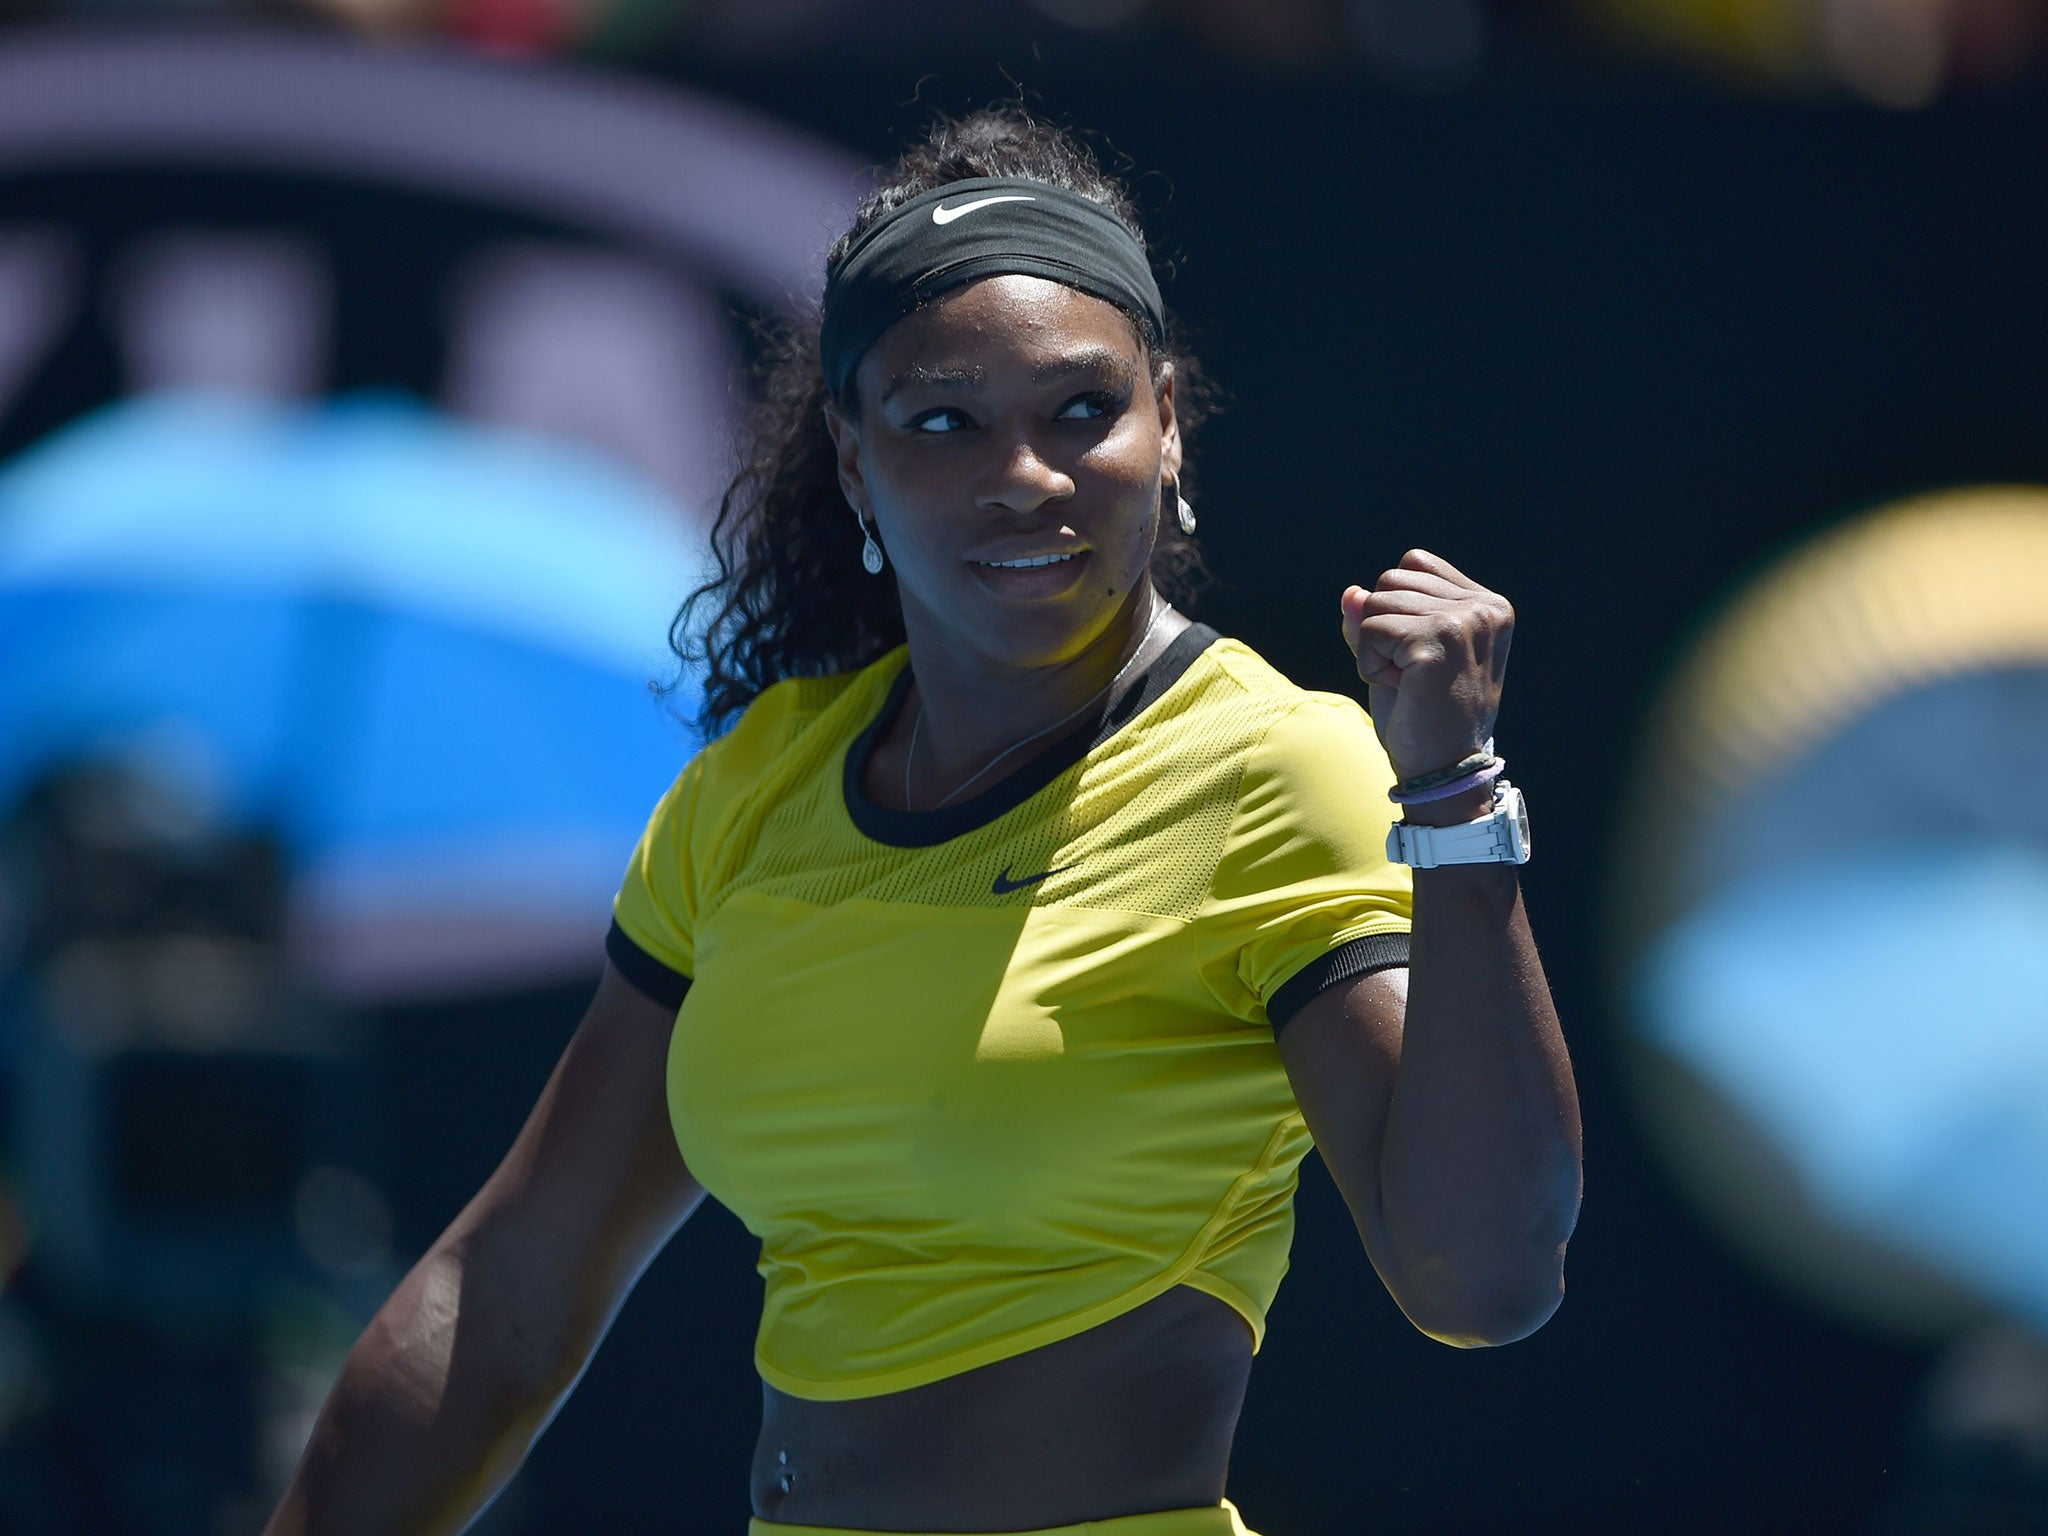 serena williams - photo #7